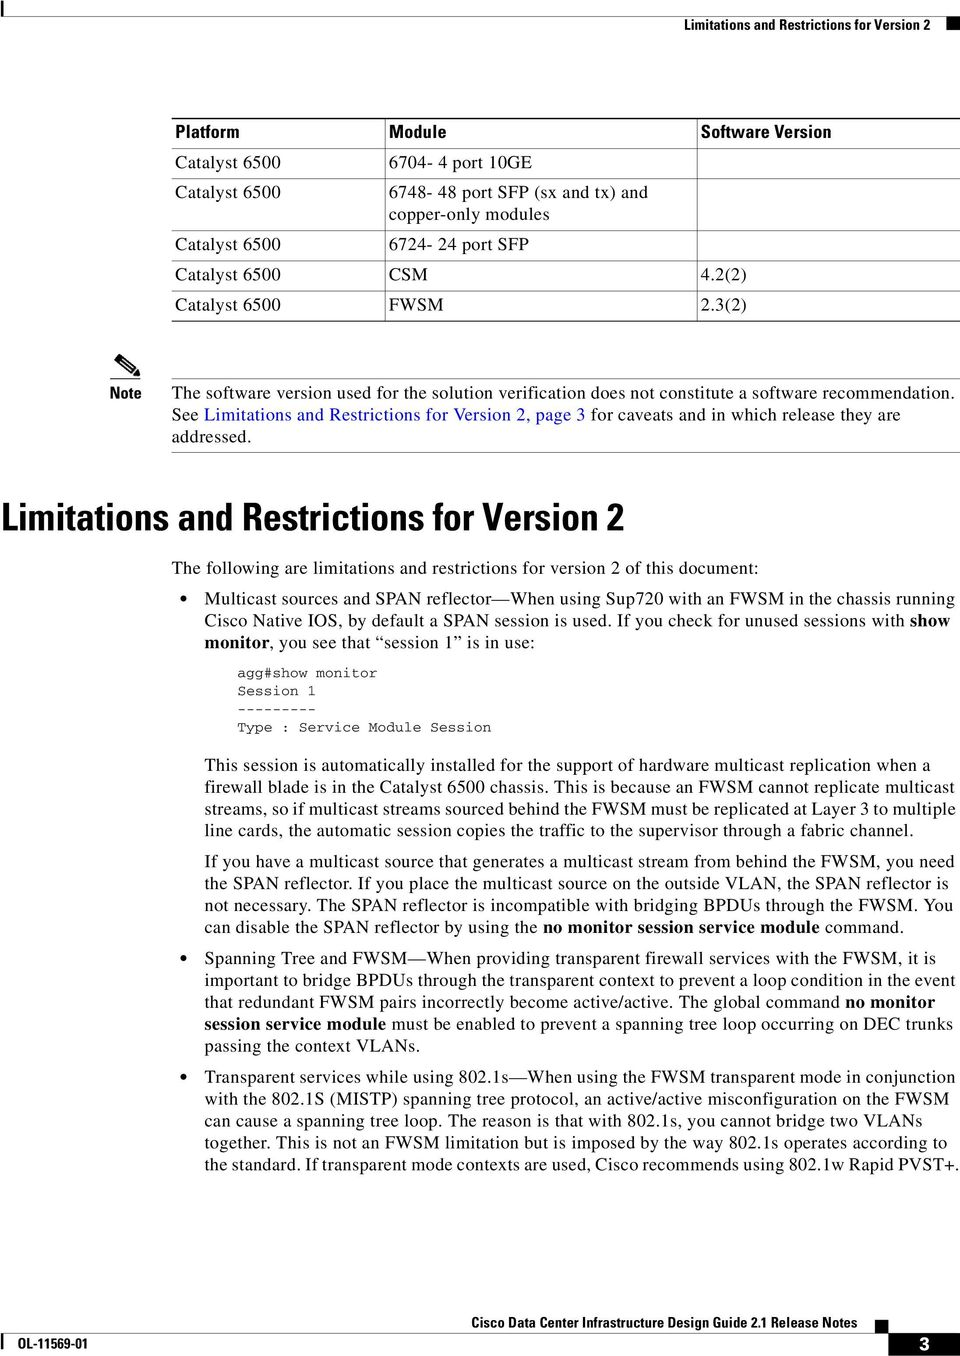 See Limitations and Restrictions for Version 2, page 3 for caveats and in which release they are addressed.